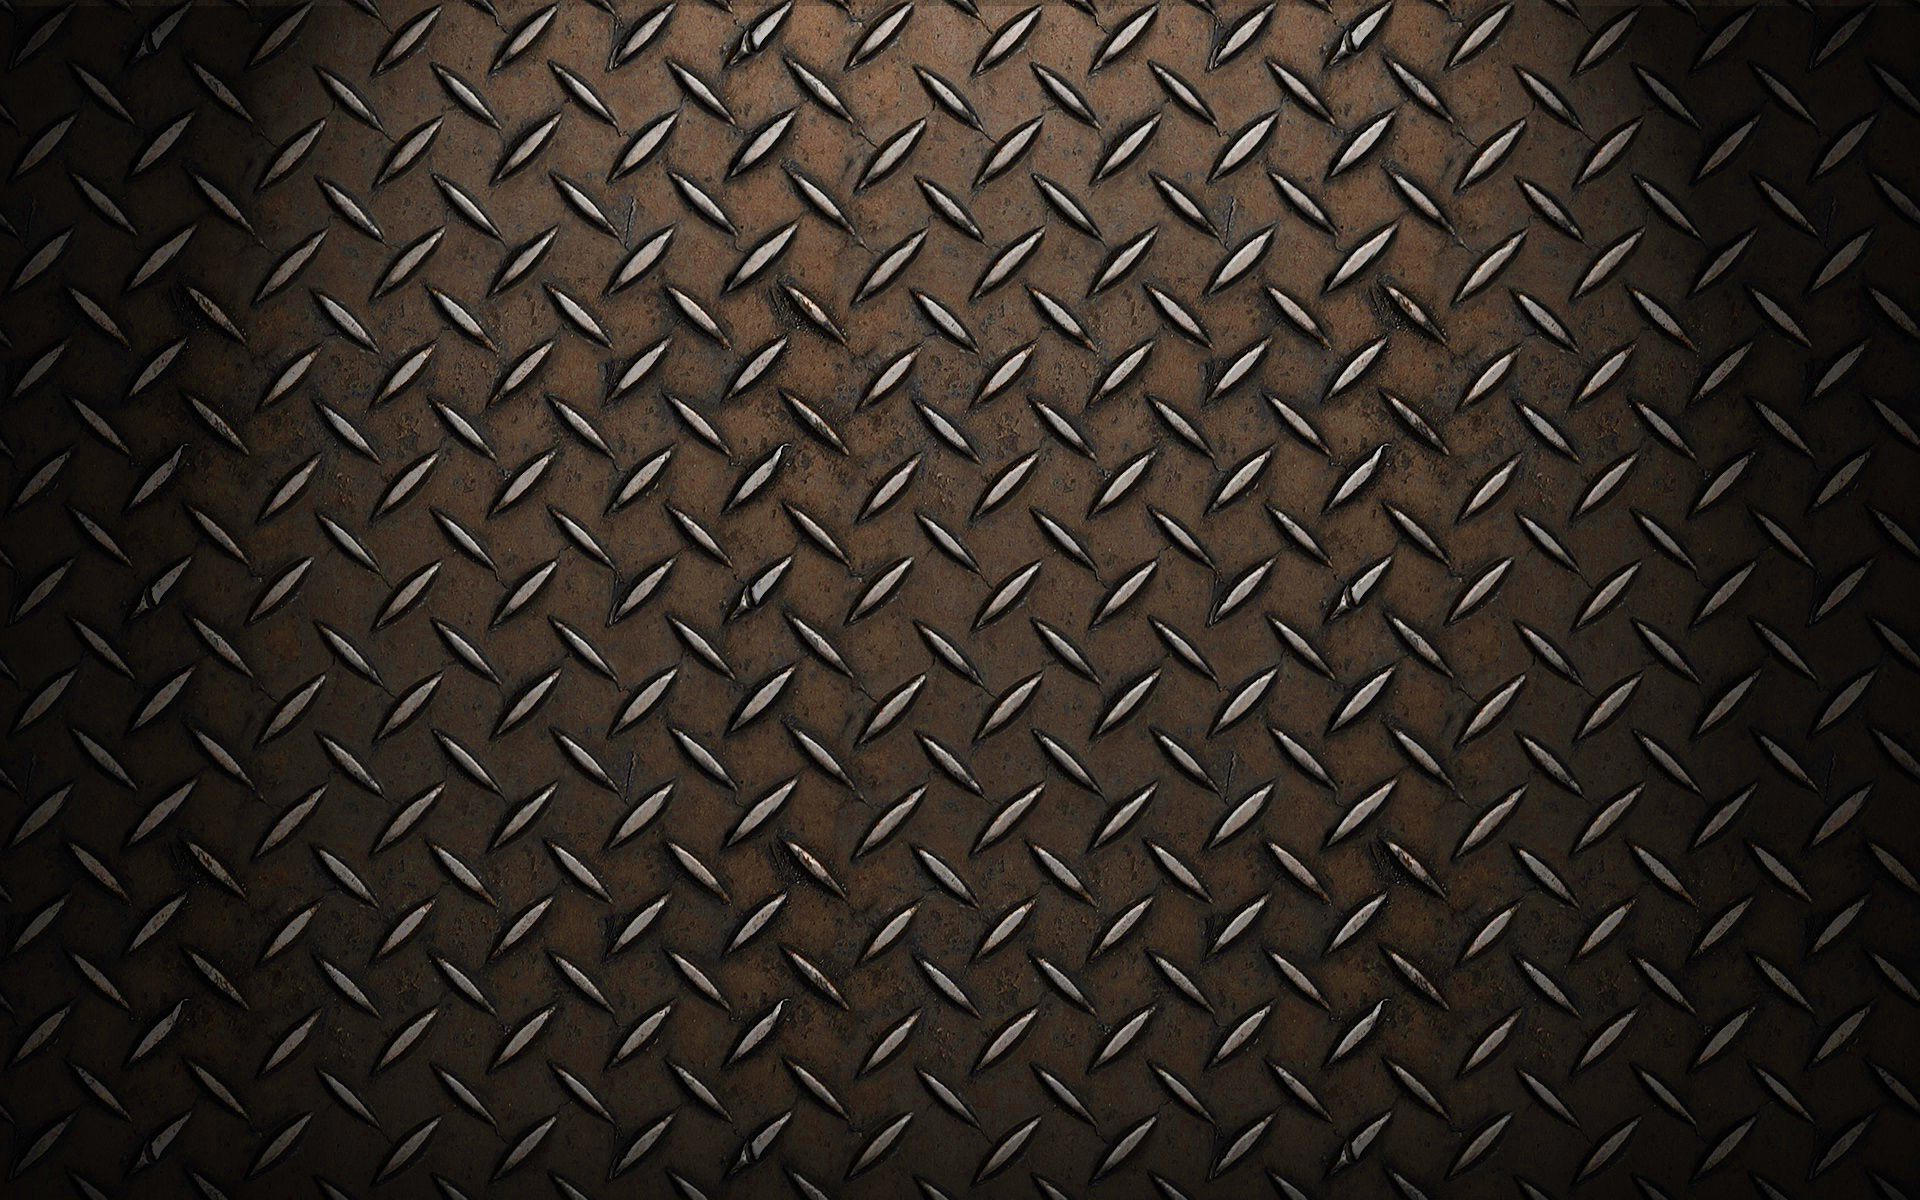 Cool Background Metal Textures | Background in 2019 ...